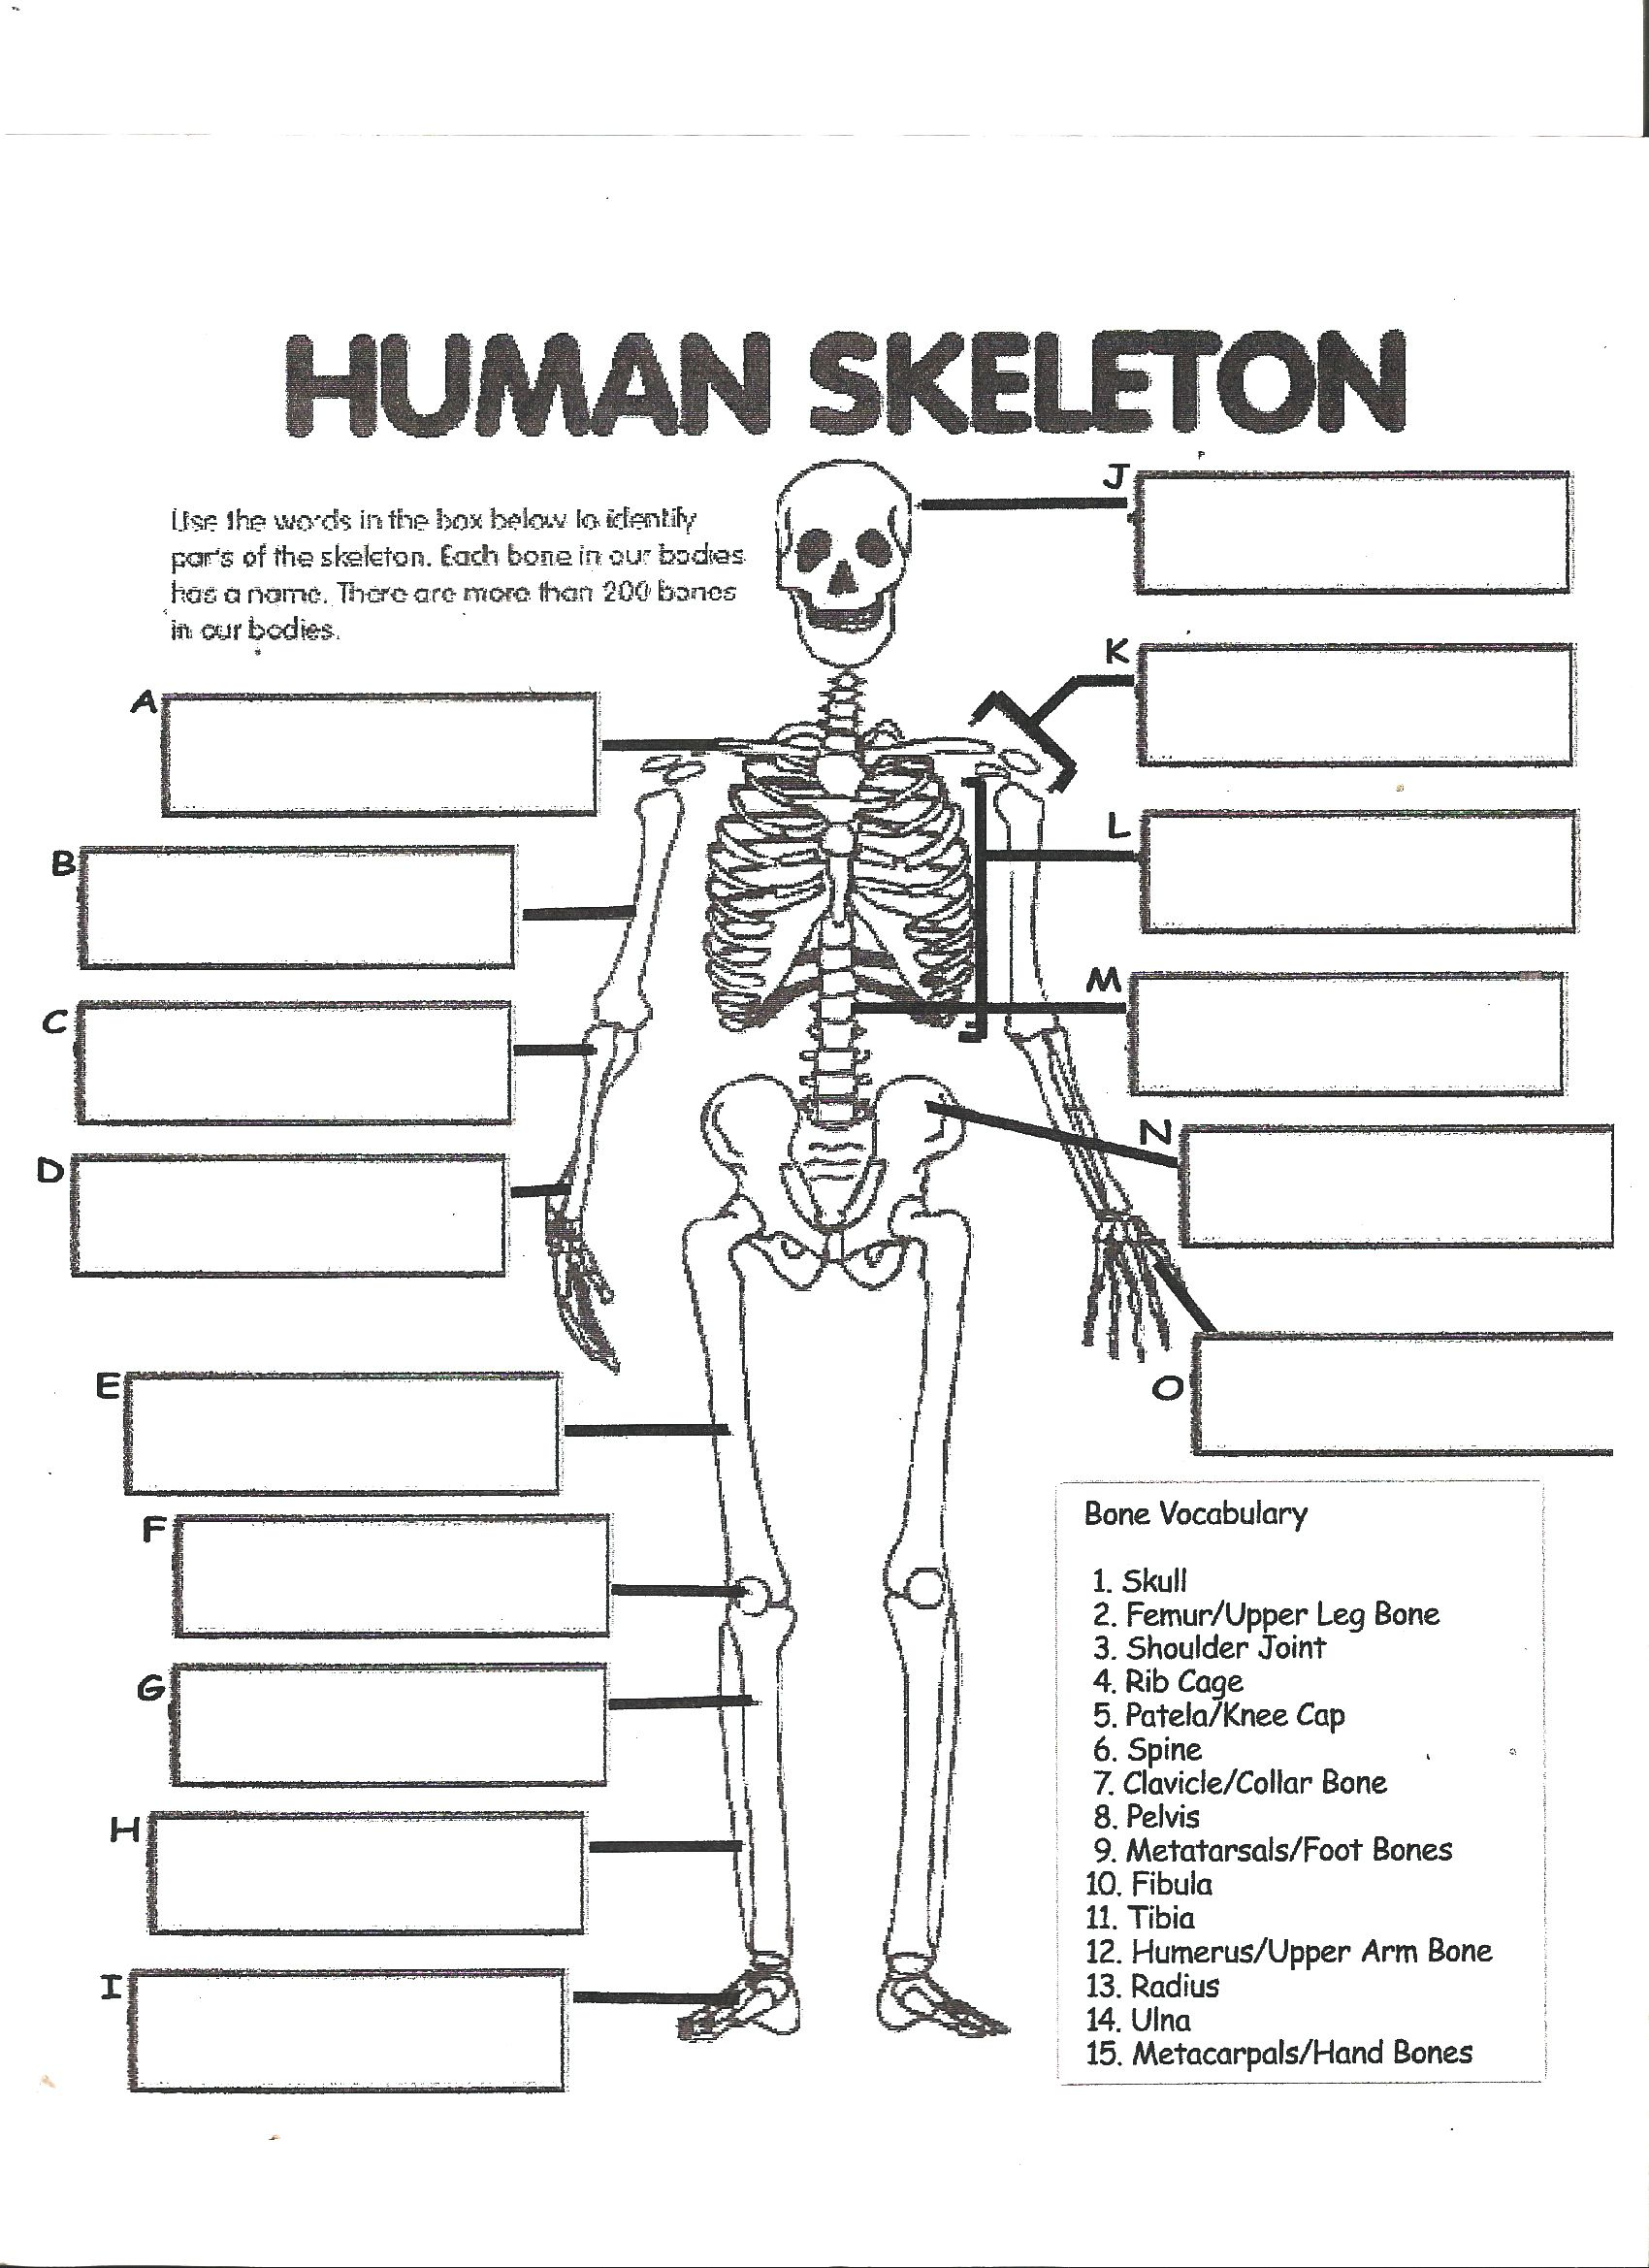 Human Skeleton Worksheet hdm – Skeletal System Diagram Worksheet